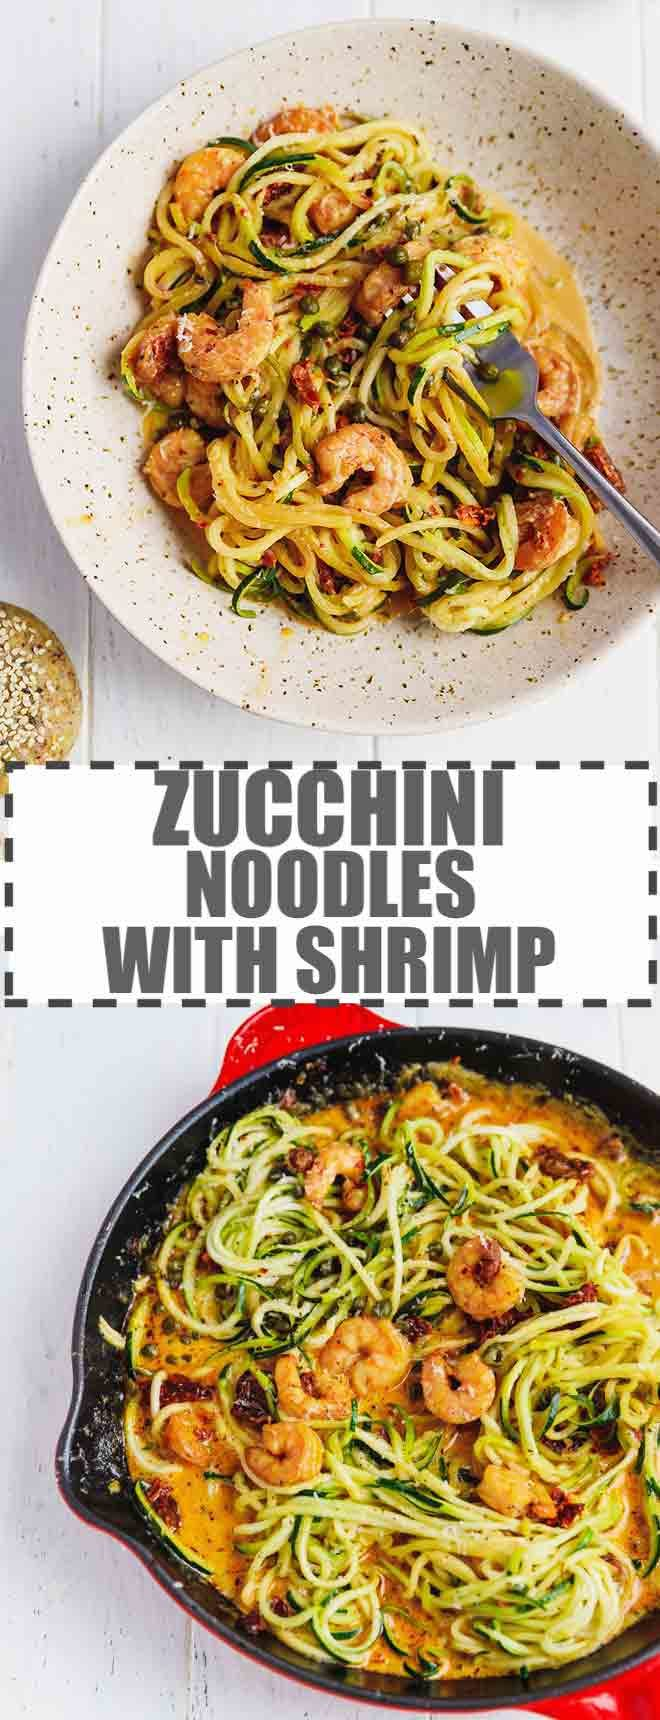 ZUCCHINI NOODLES WITH SHRIMP IN A BOWL